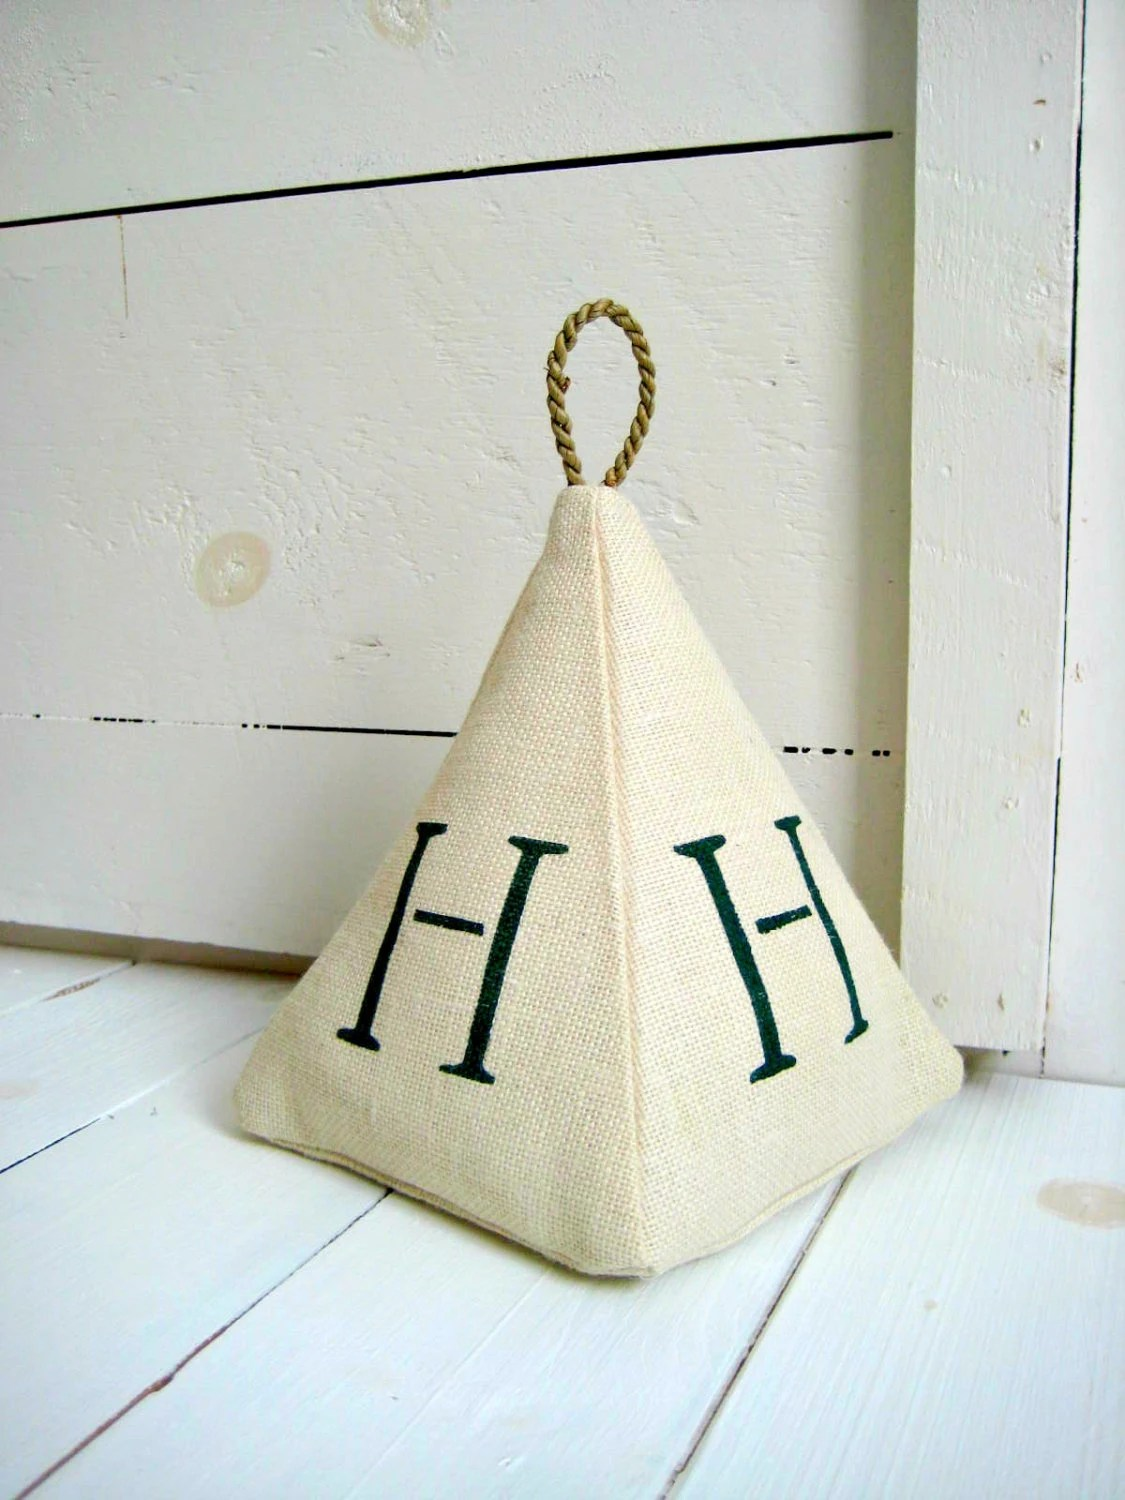 Rustic Door Stopper Monogram Burlap Doorstop Rustic Decor Cottage Chic Fabric